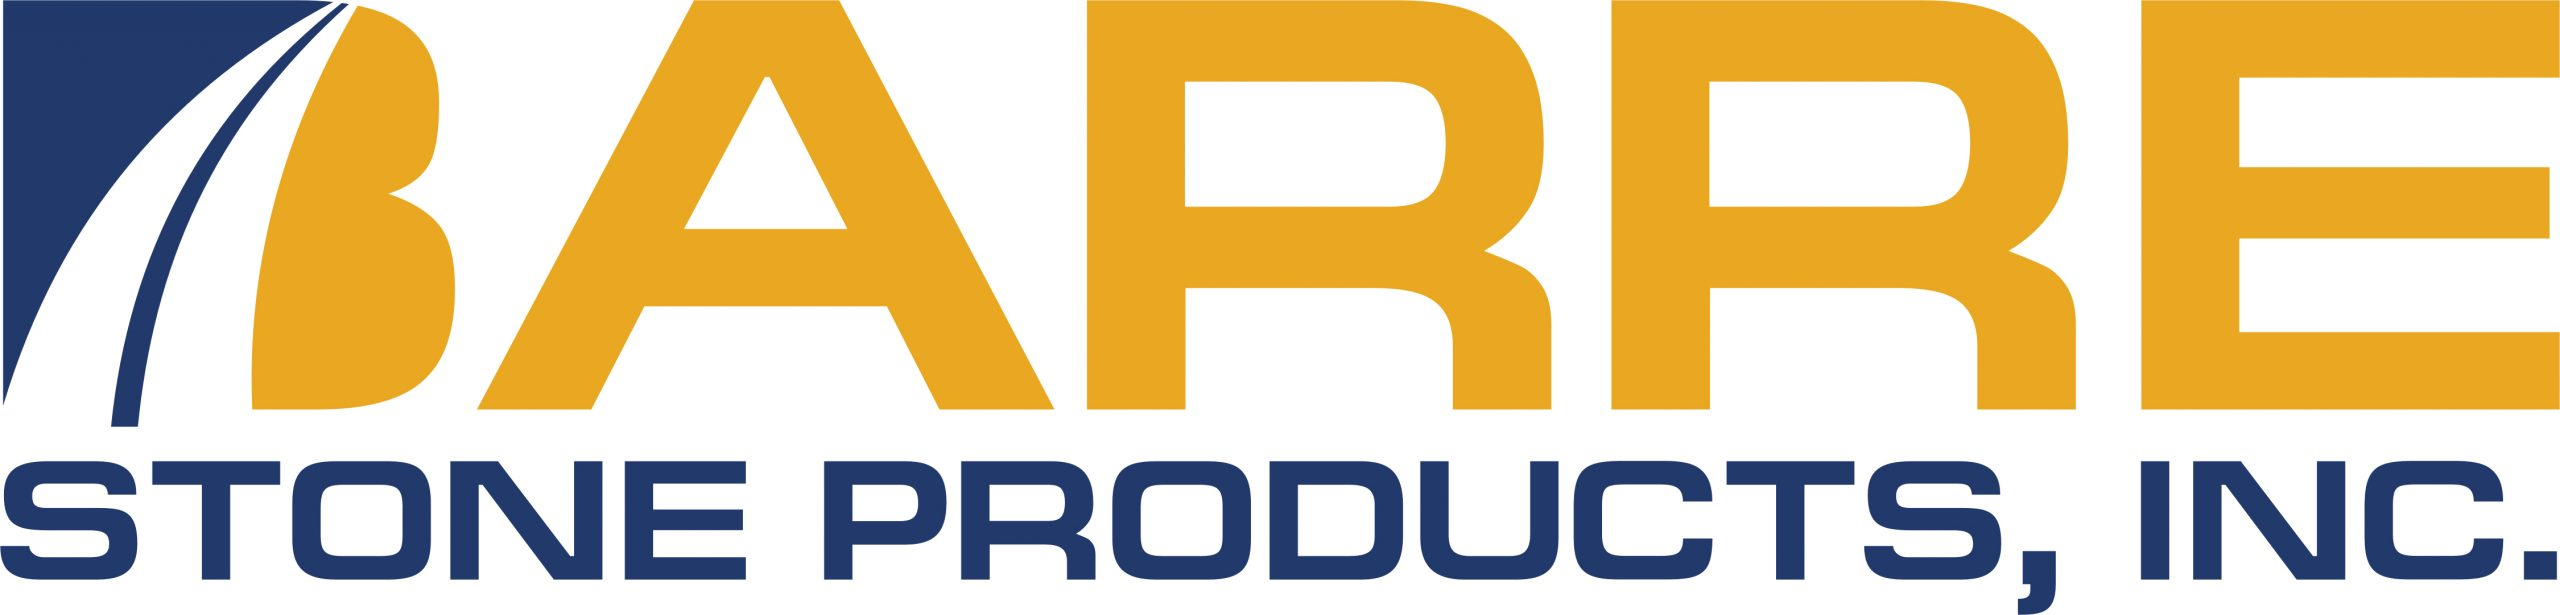 Barre Stone Products